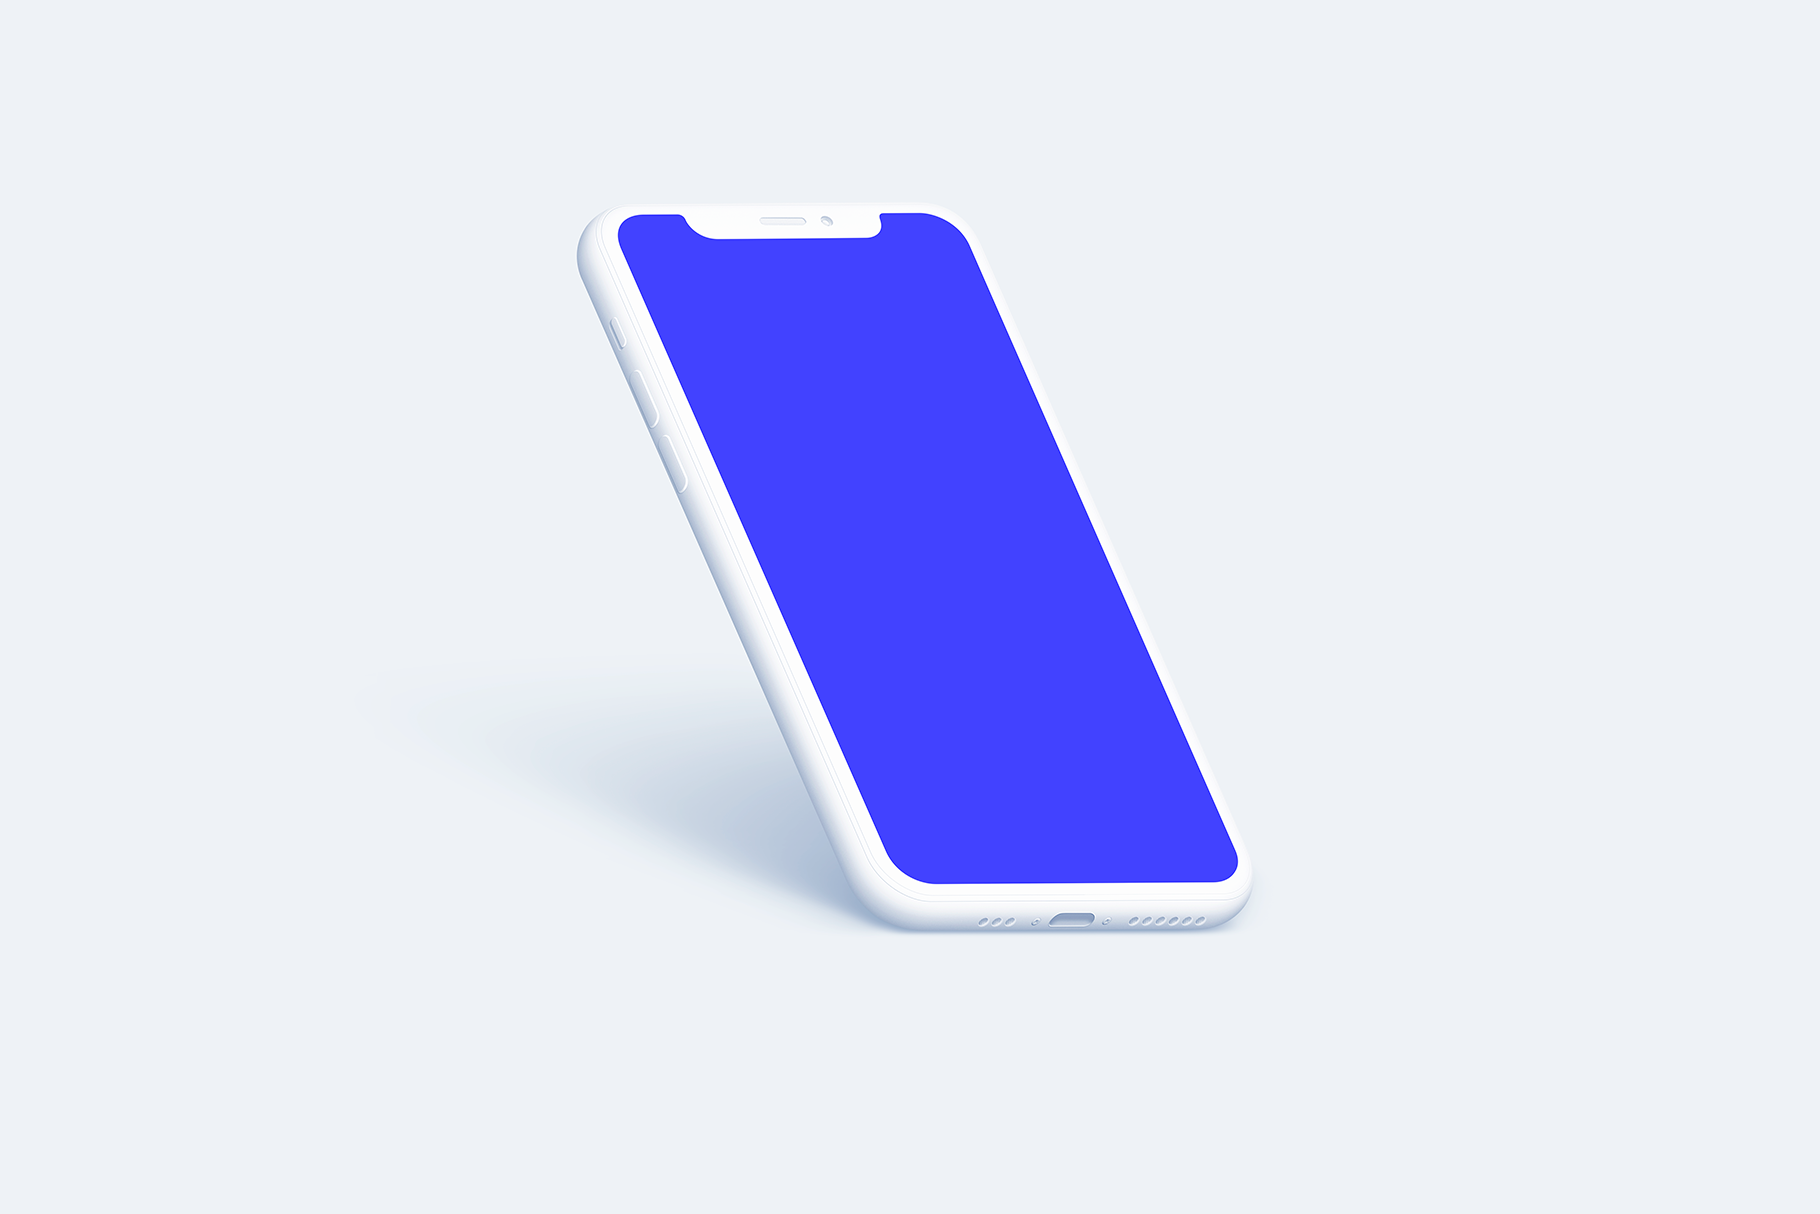 iPhone 11 Pro - 20 Clay Mockups Scenes - PSD example image 17